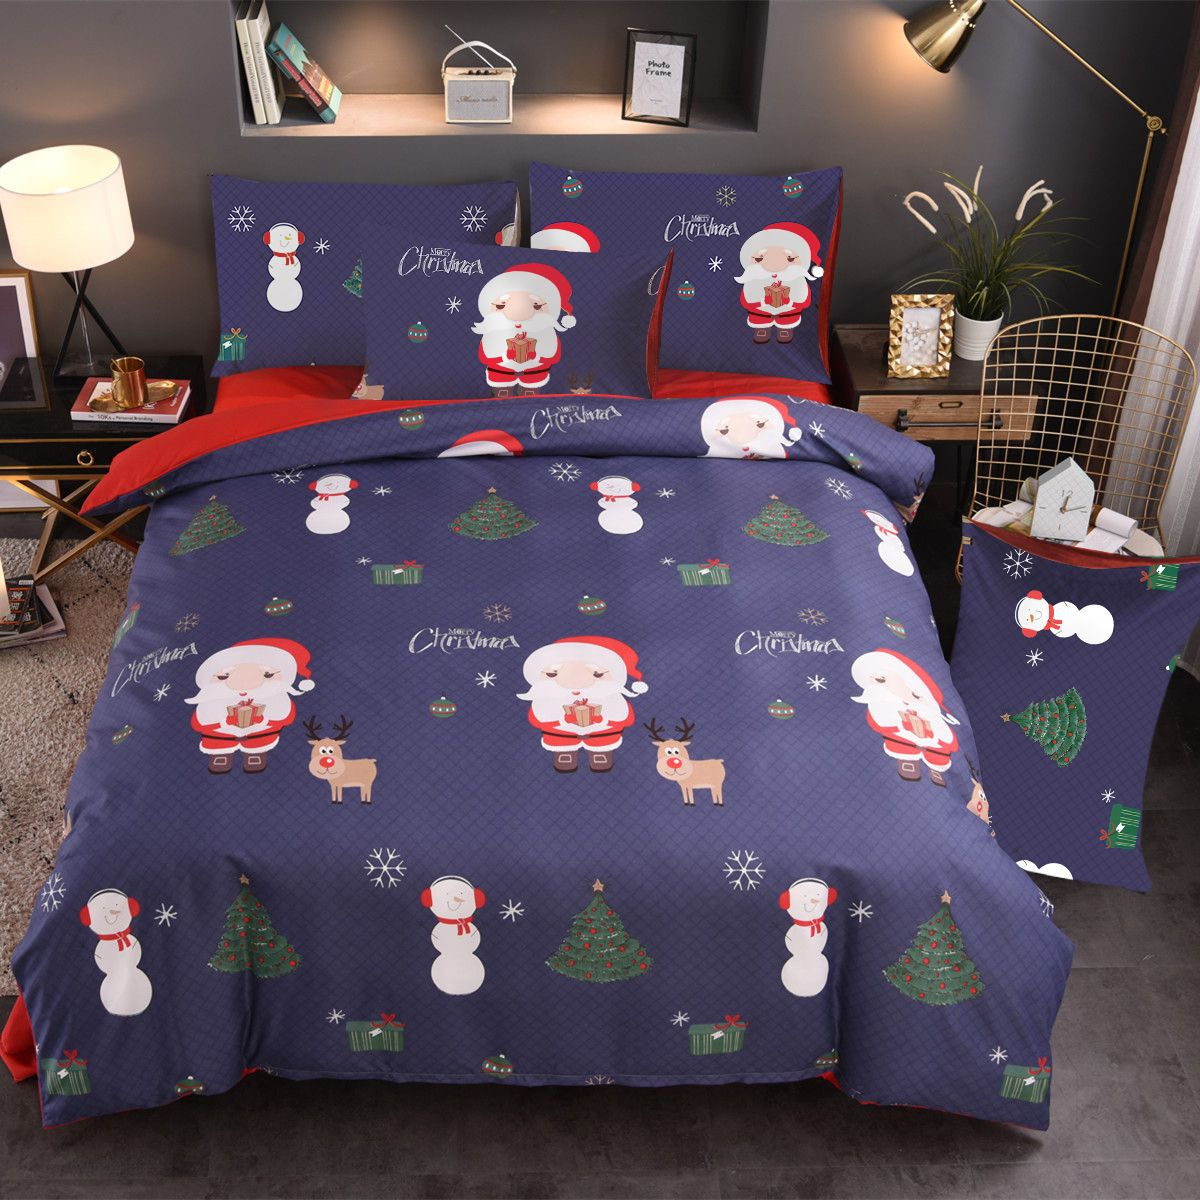 Christmas Day Bed sheet Household quilt pillow cover Santa Claus 4 piece suit Red cotton